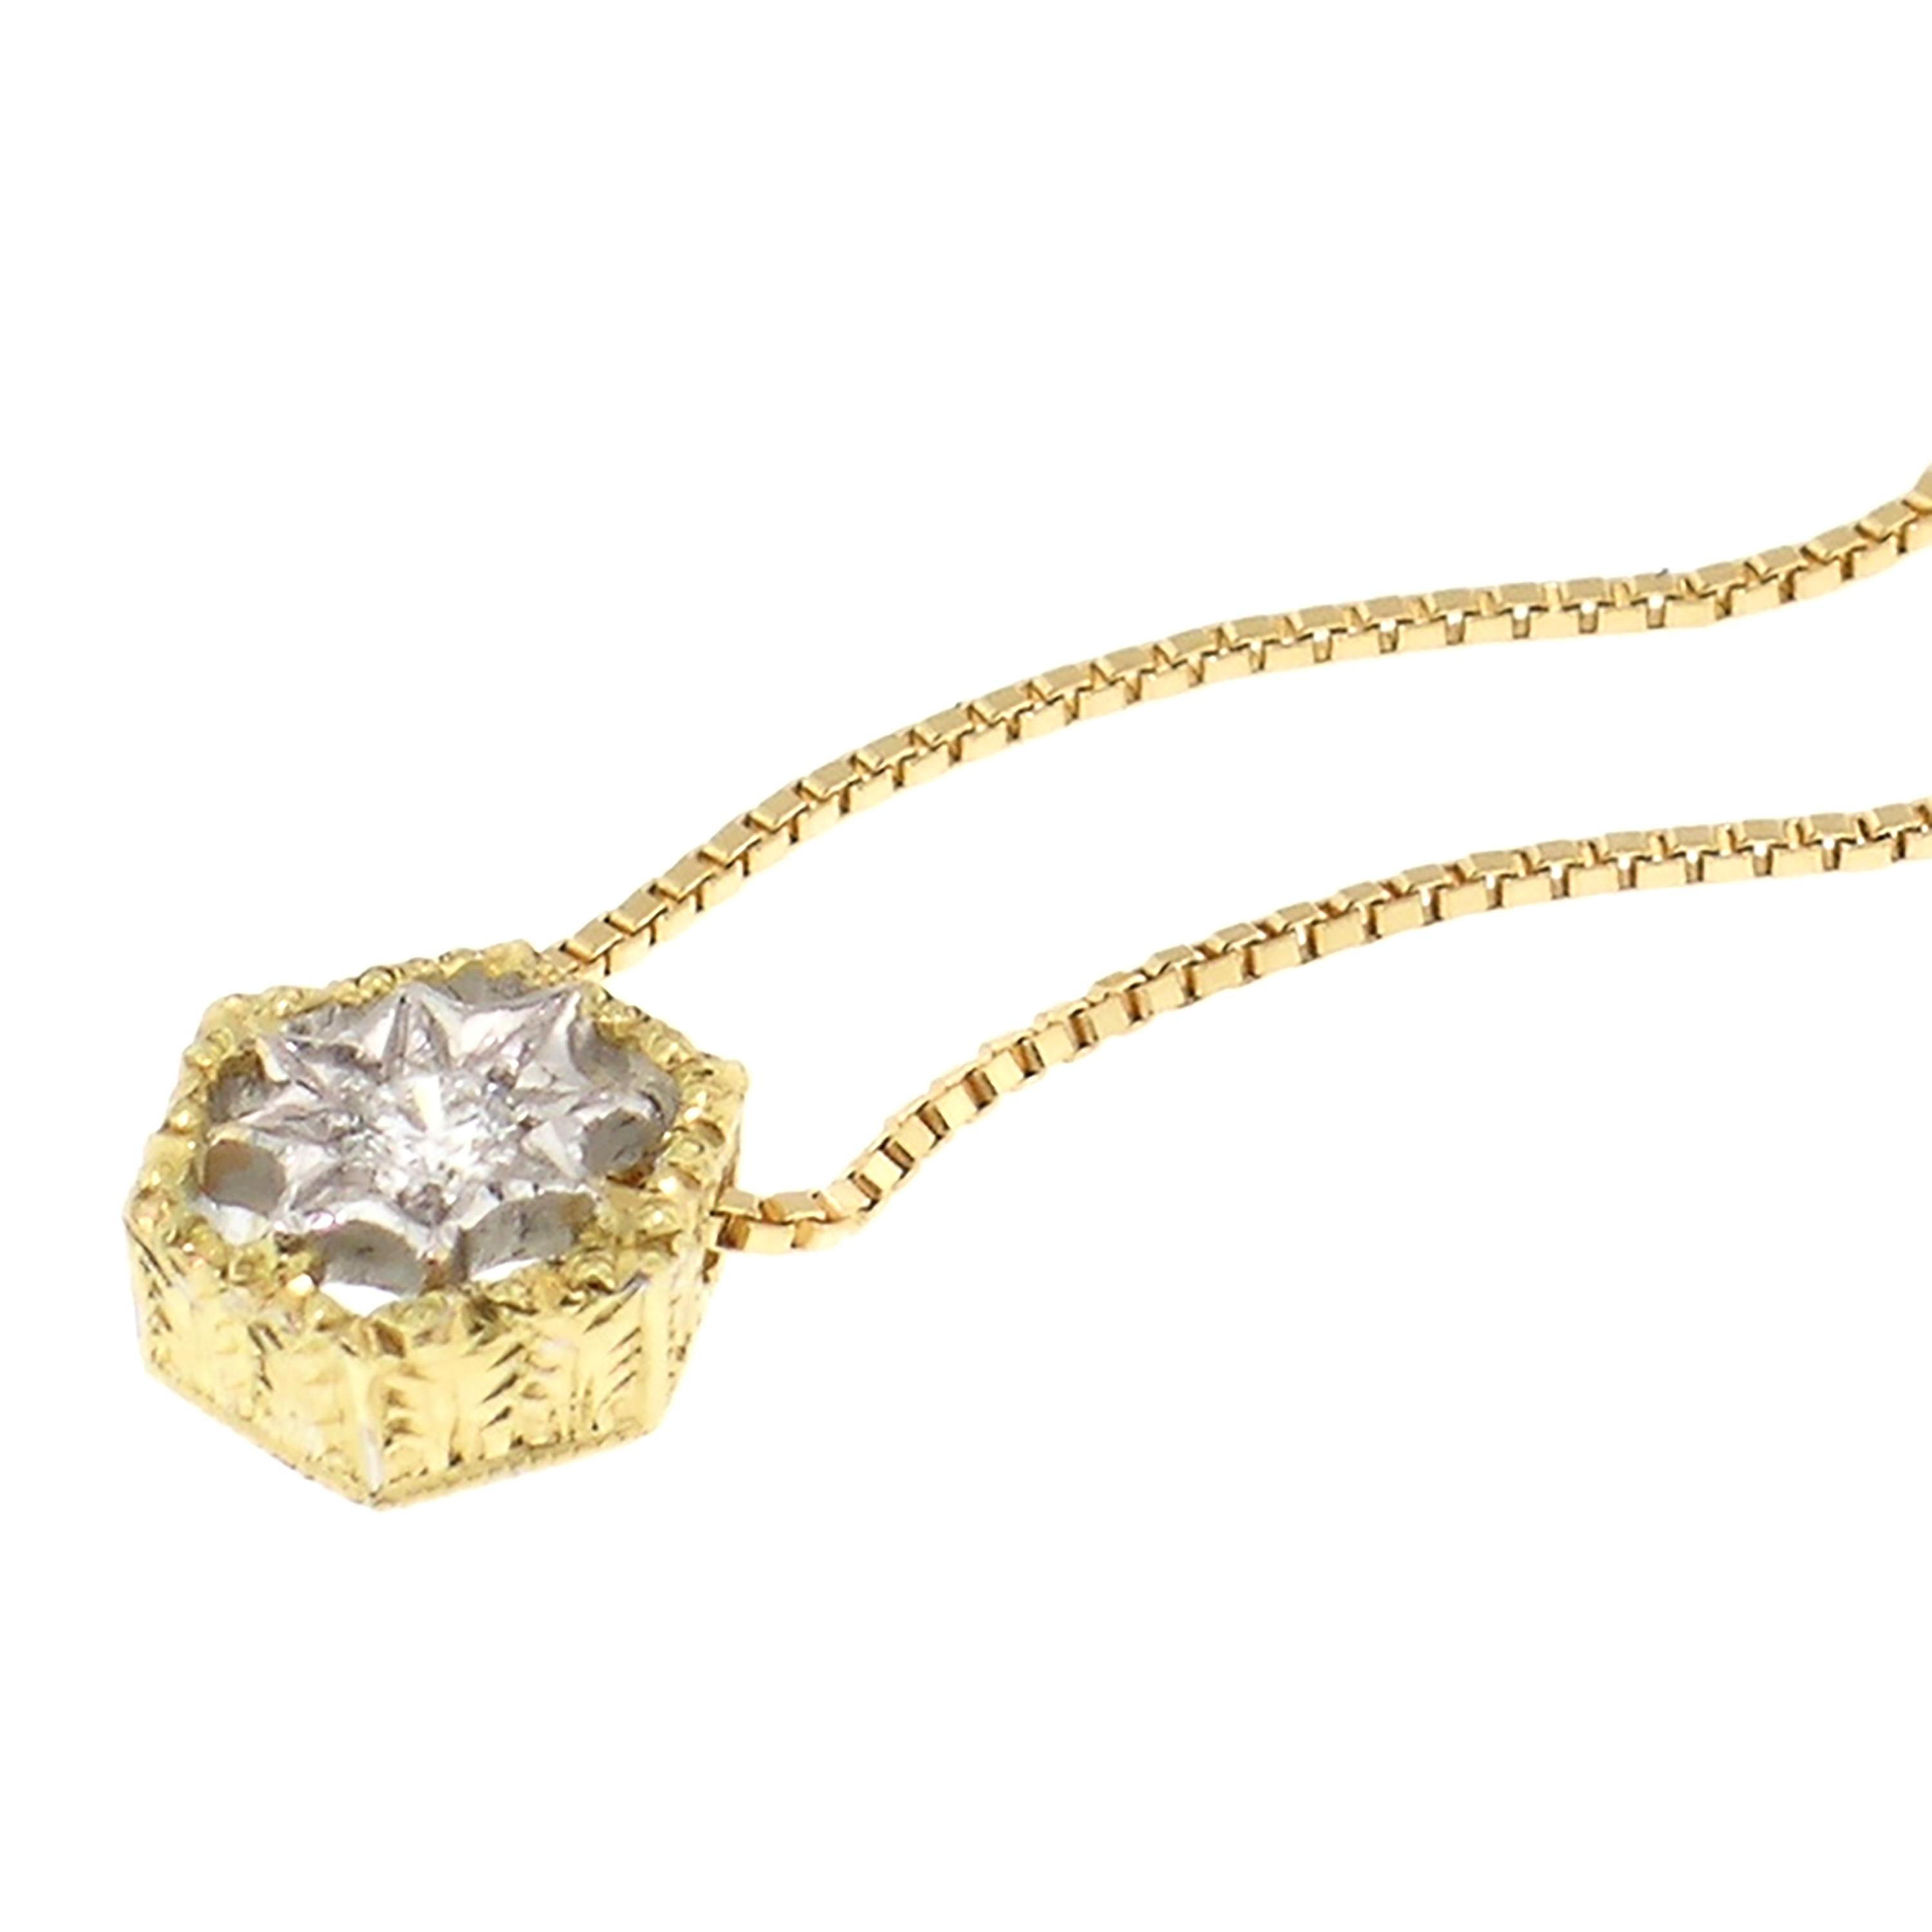 18 Karat and Diamond Pendant Necklace, Handmade and Hand Engraved in Italy